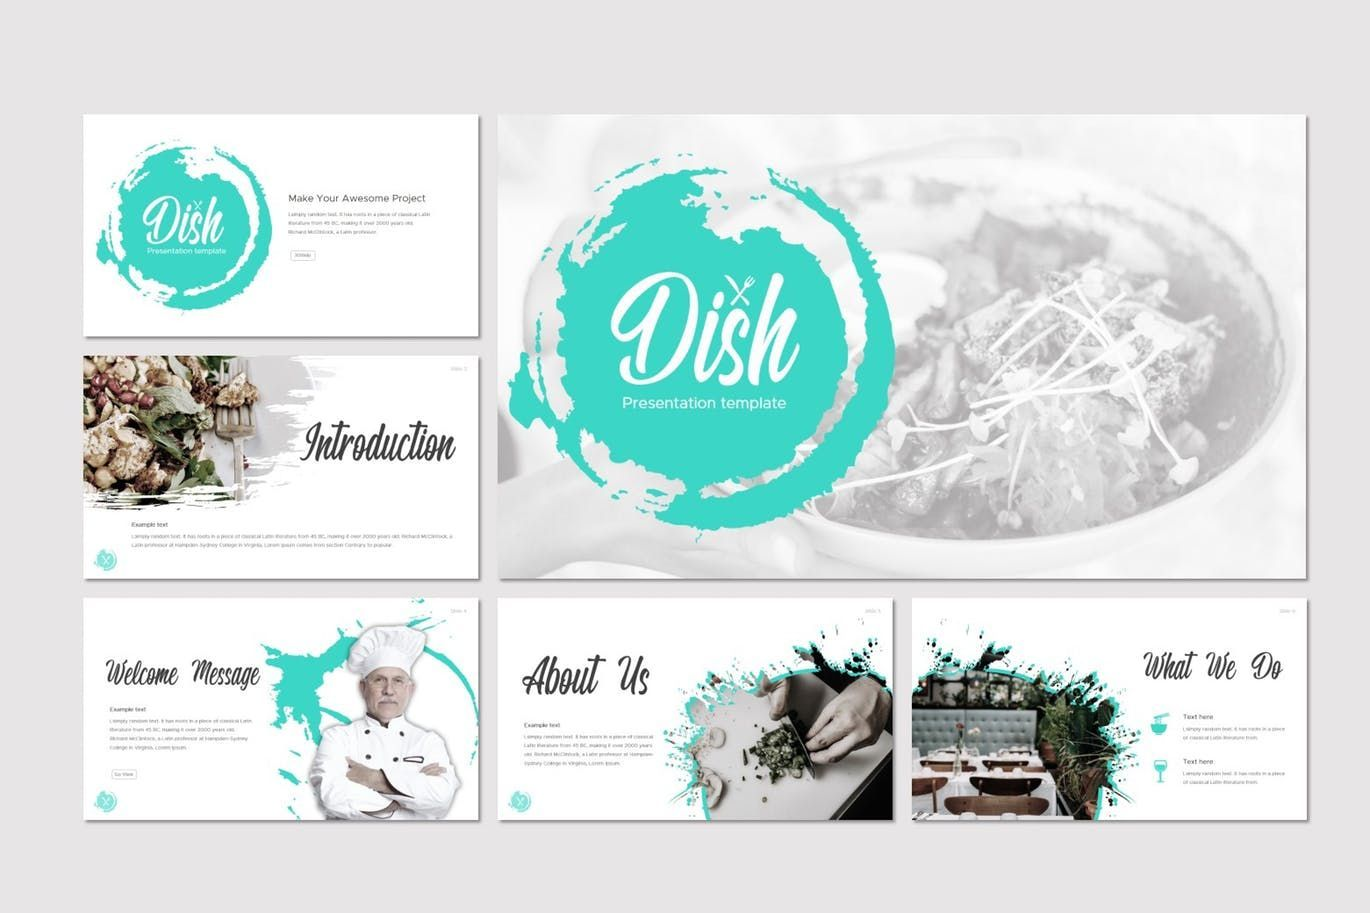 Dish - Keynote Template, Slide 2, 07642, Presentation Templates — PoweredTemplate.com